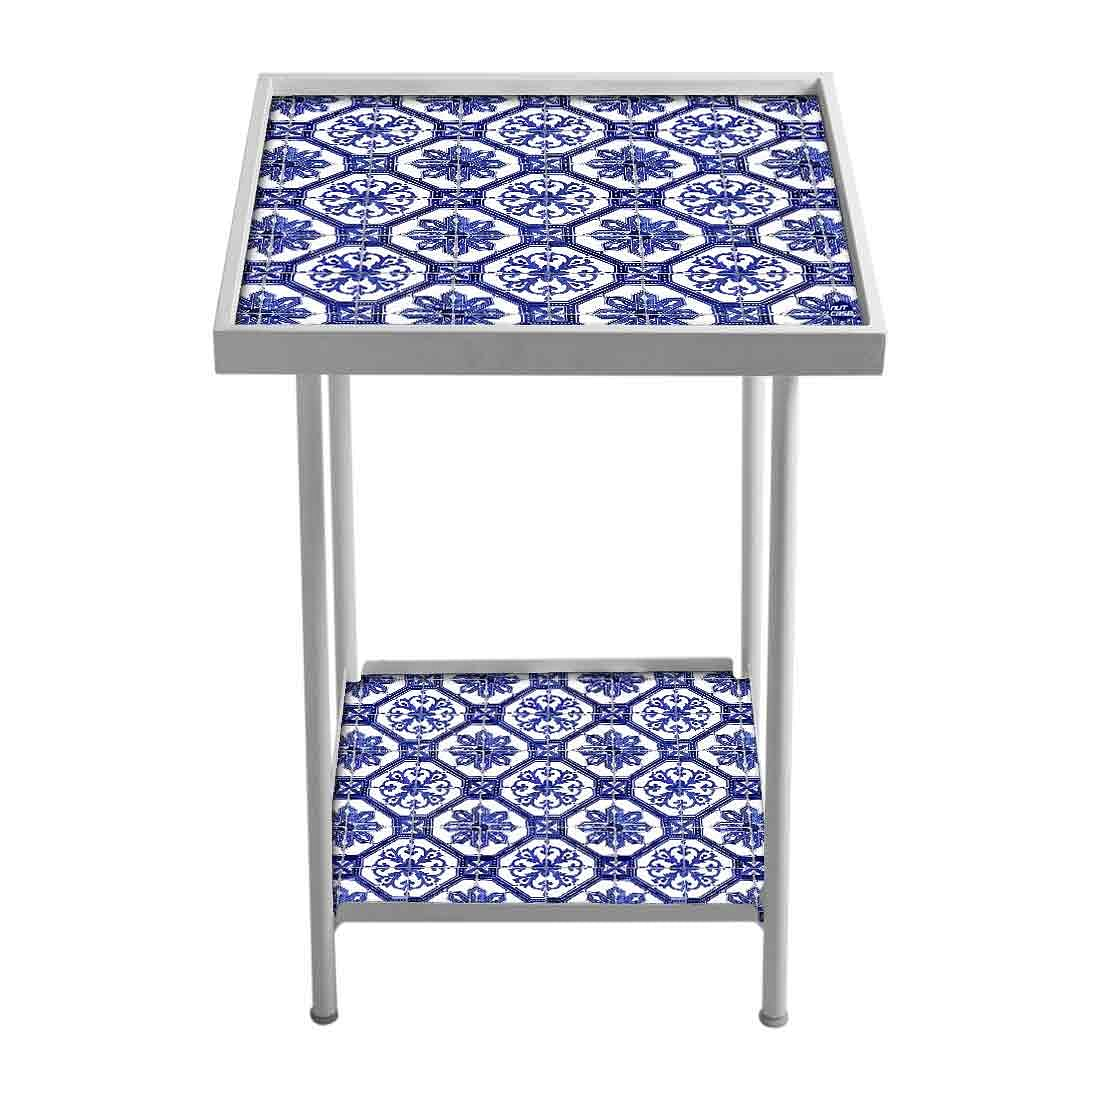 Designer White Metal Side Table